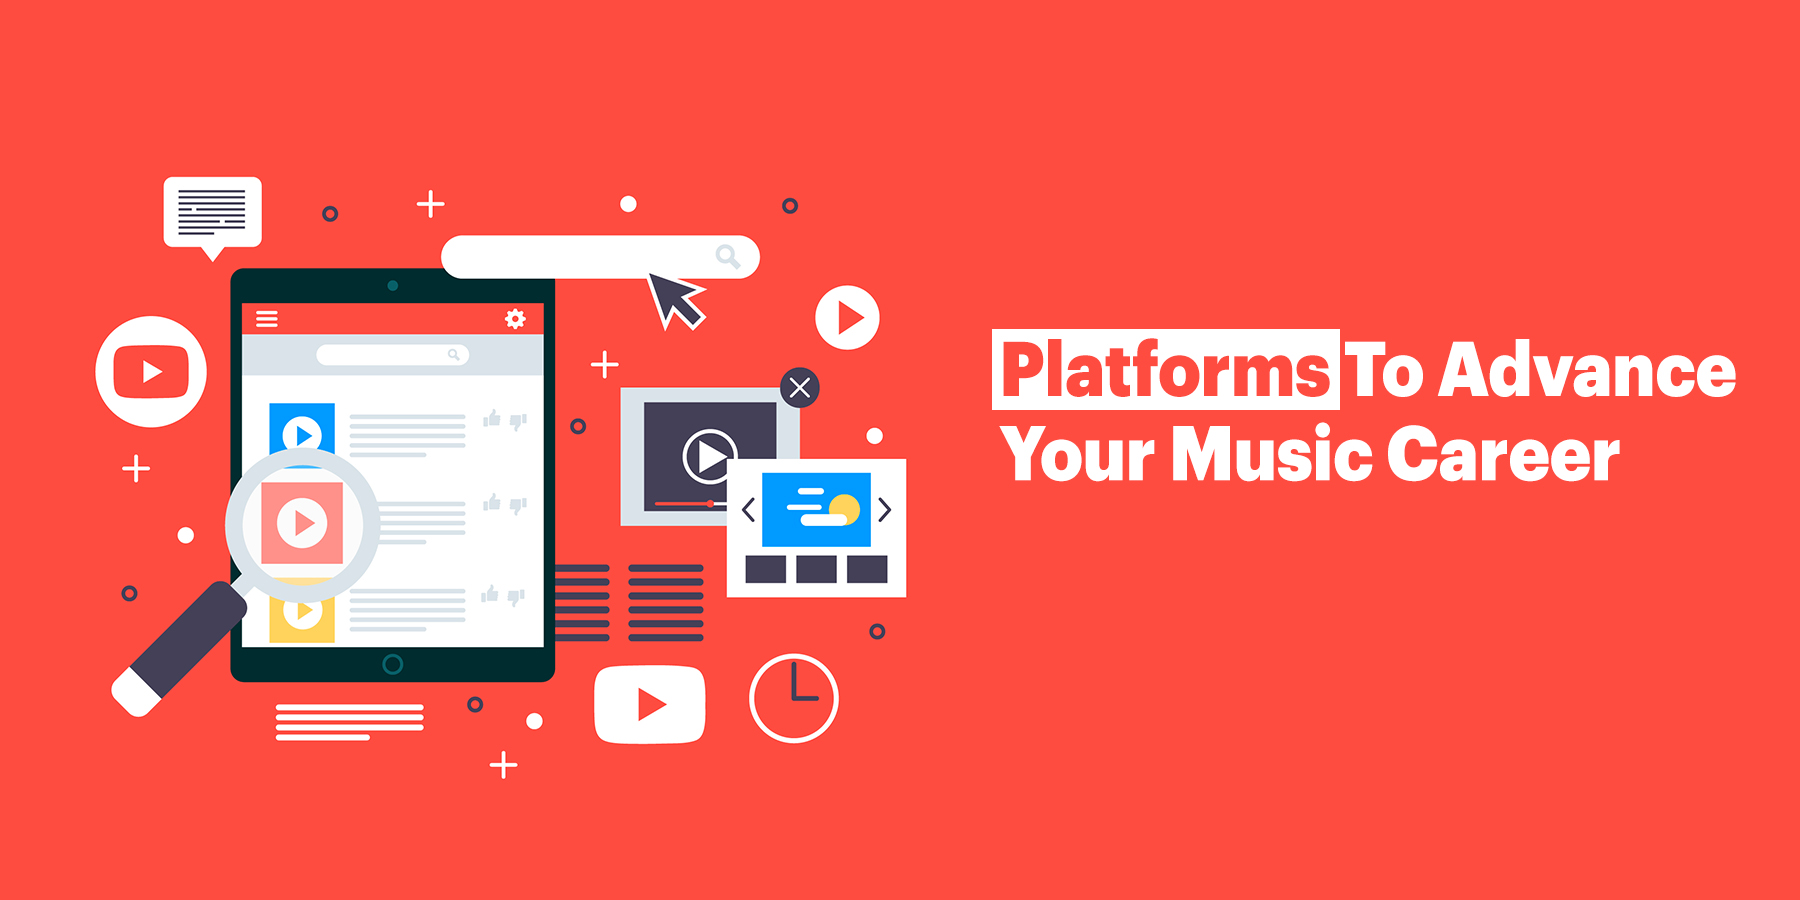 New Music Platforms